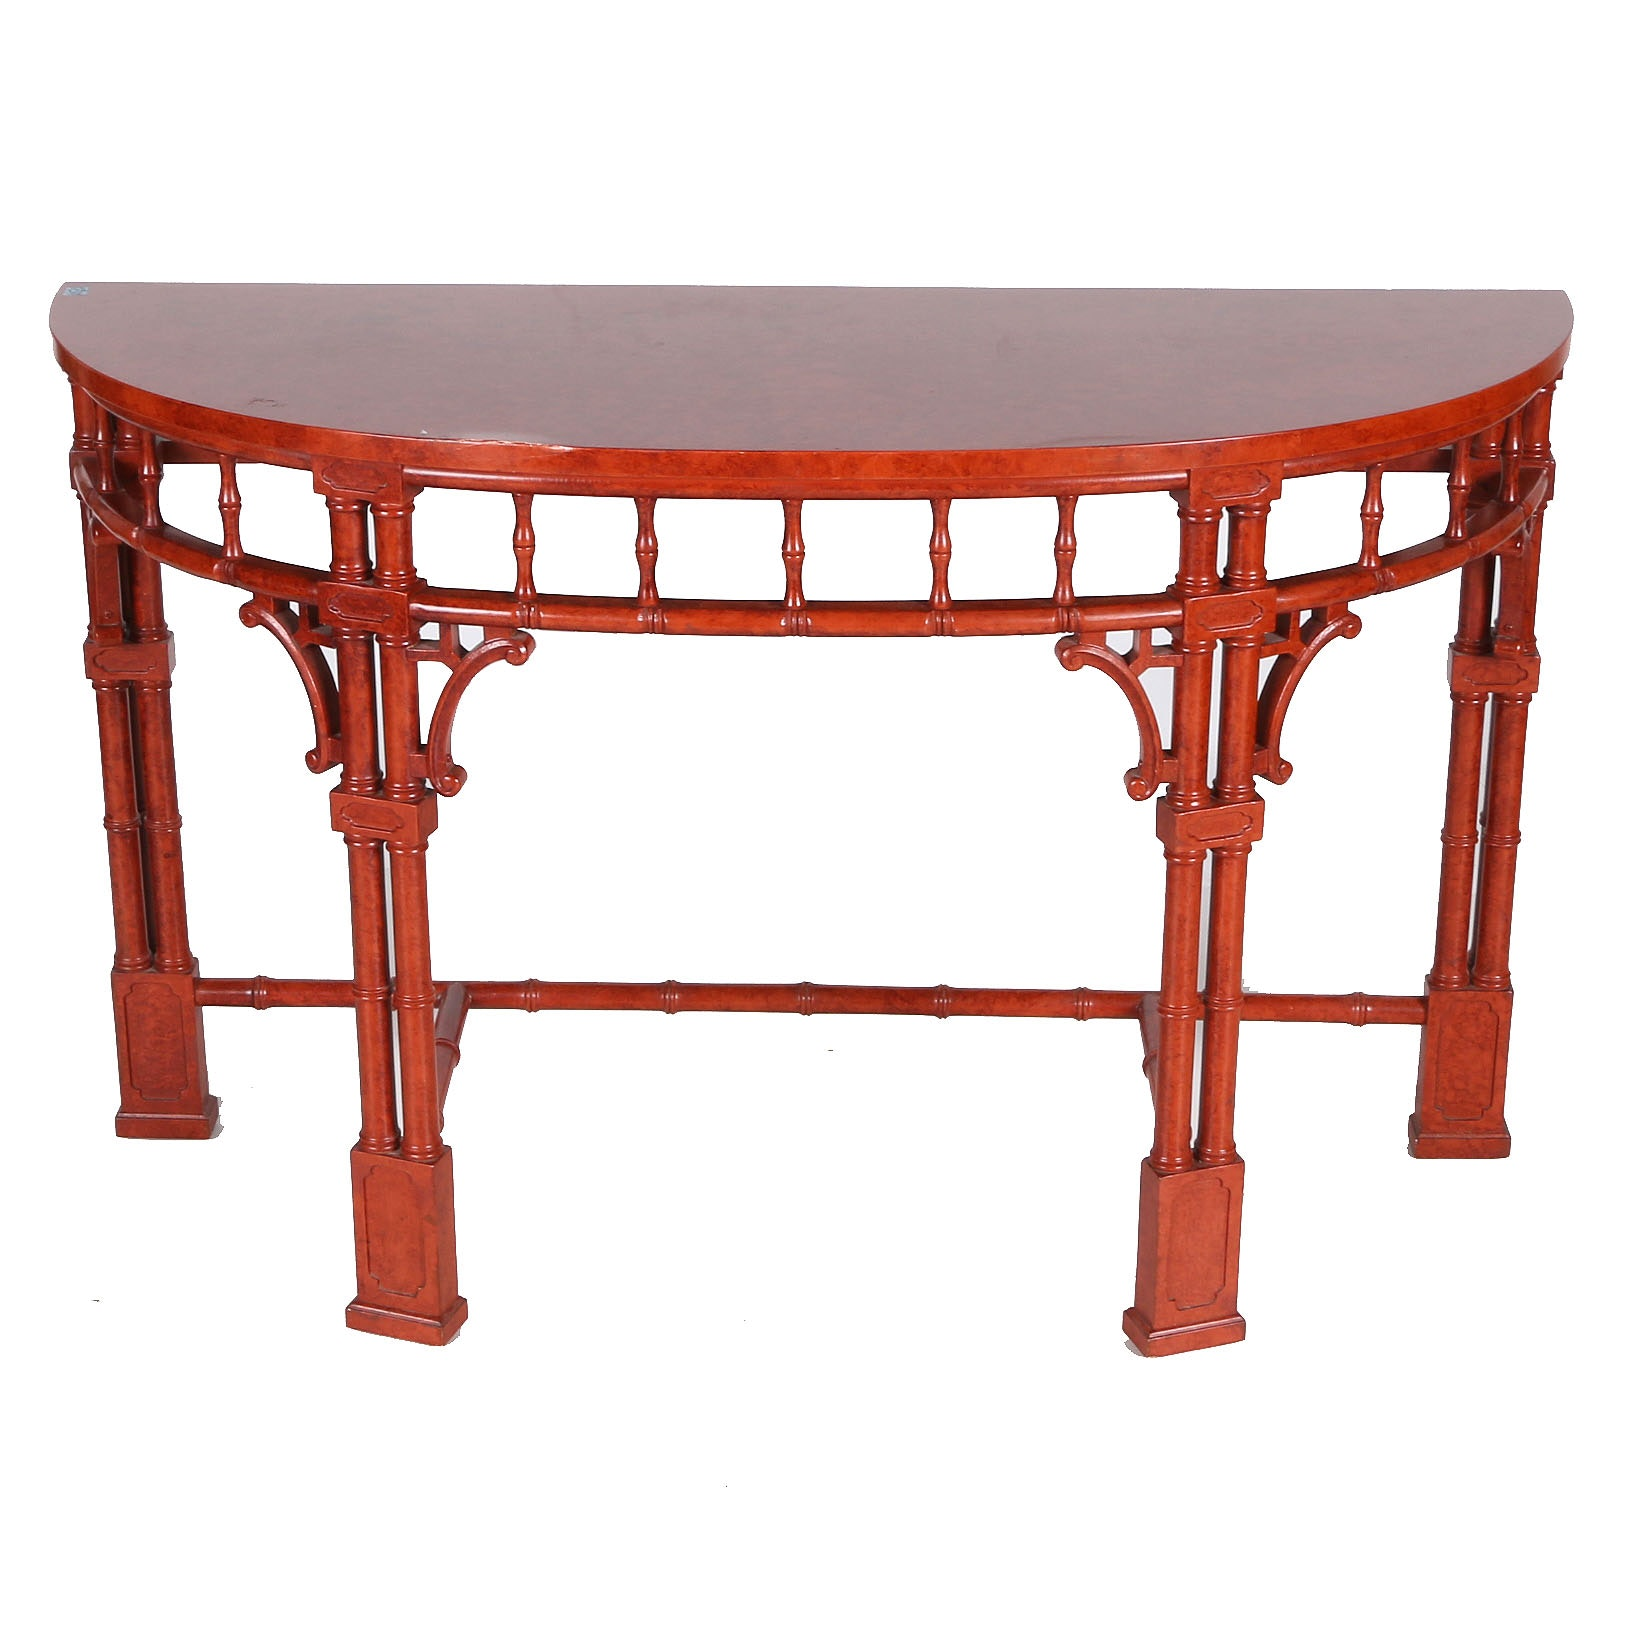 Contemporary Asian-Inspired Demilune Console Table